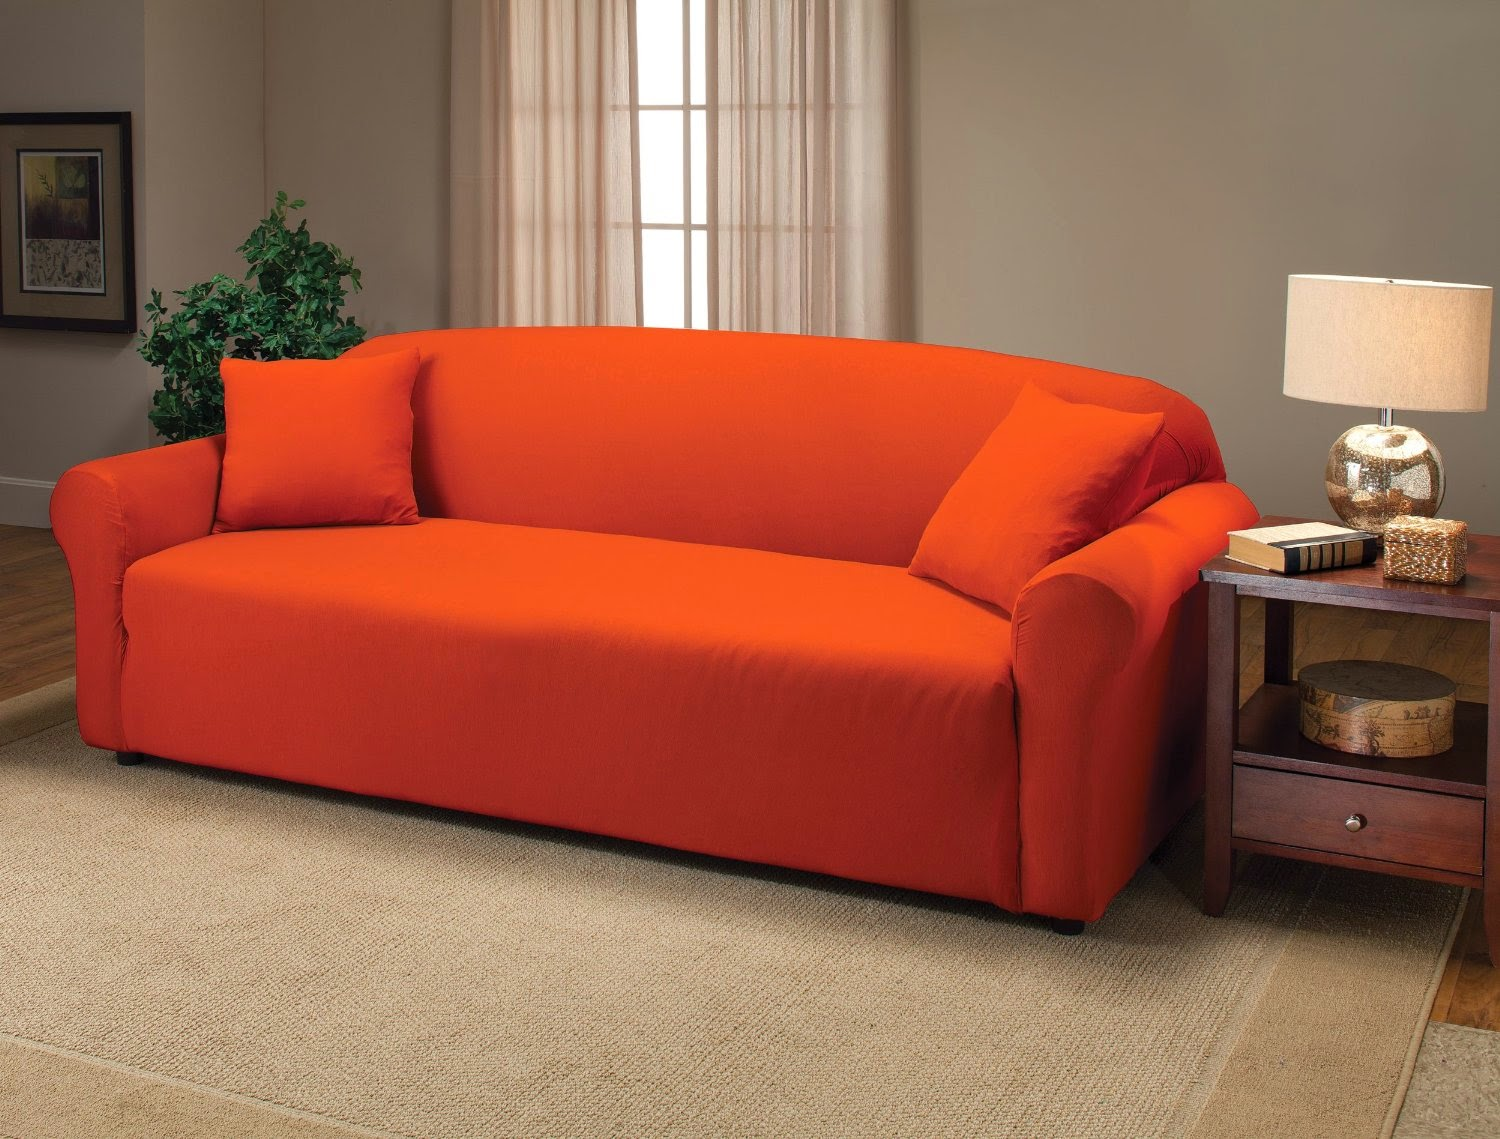 orange couch: orange couch cover